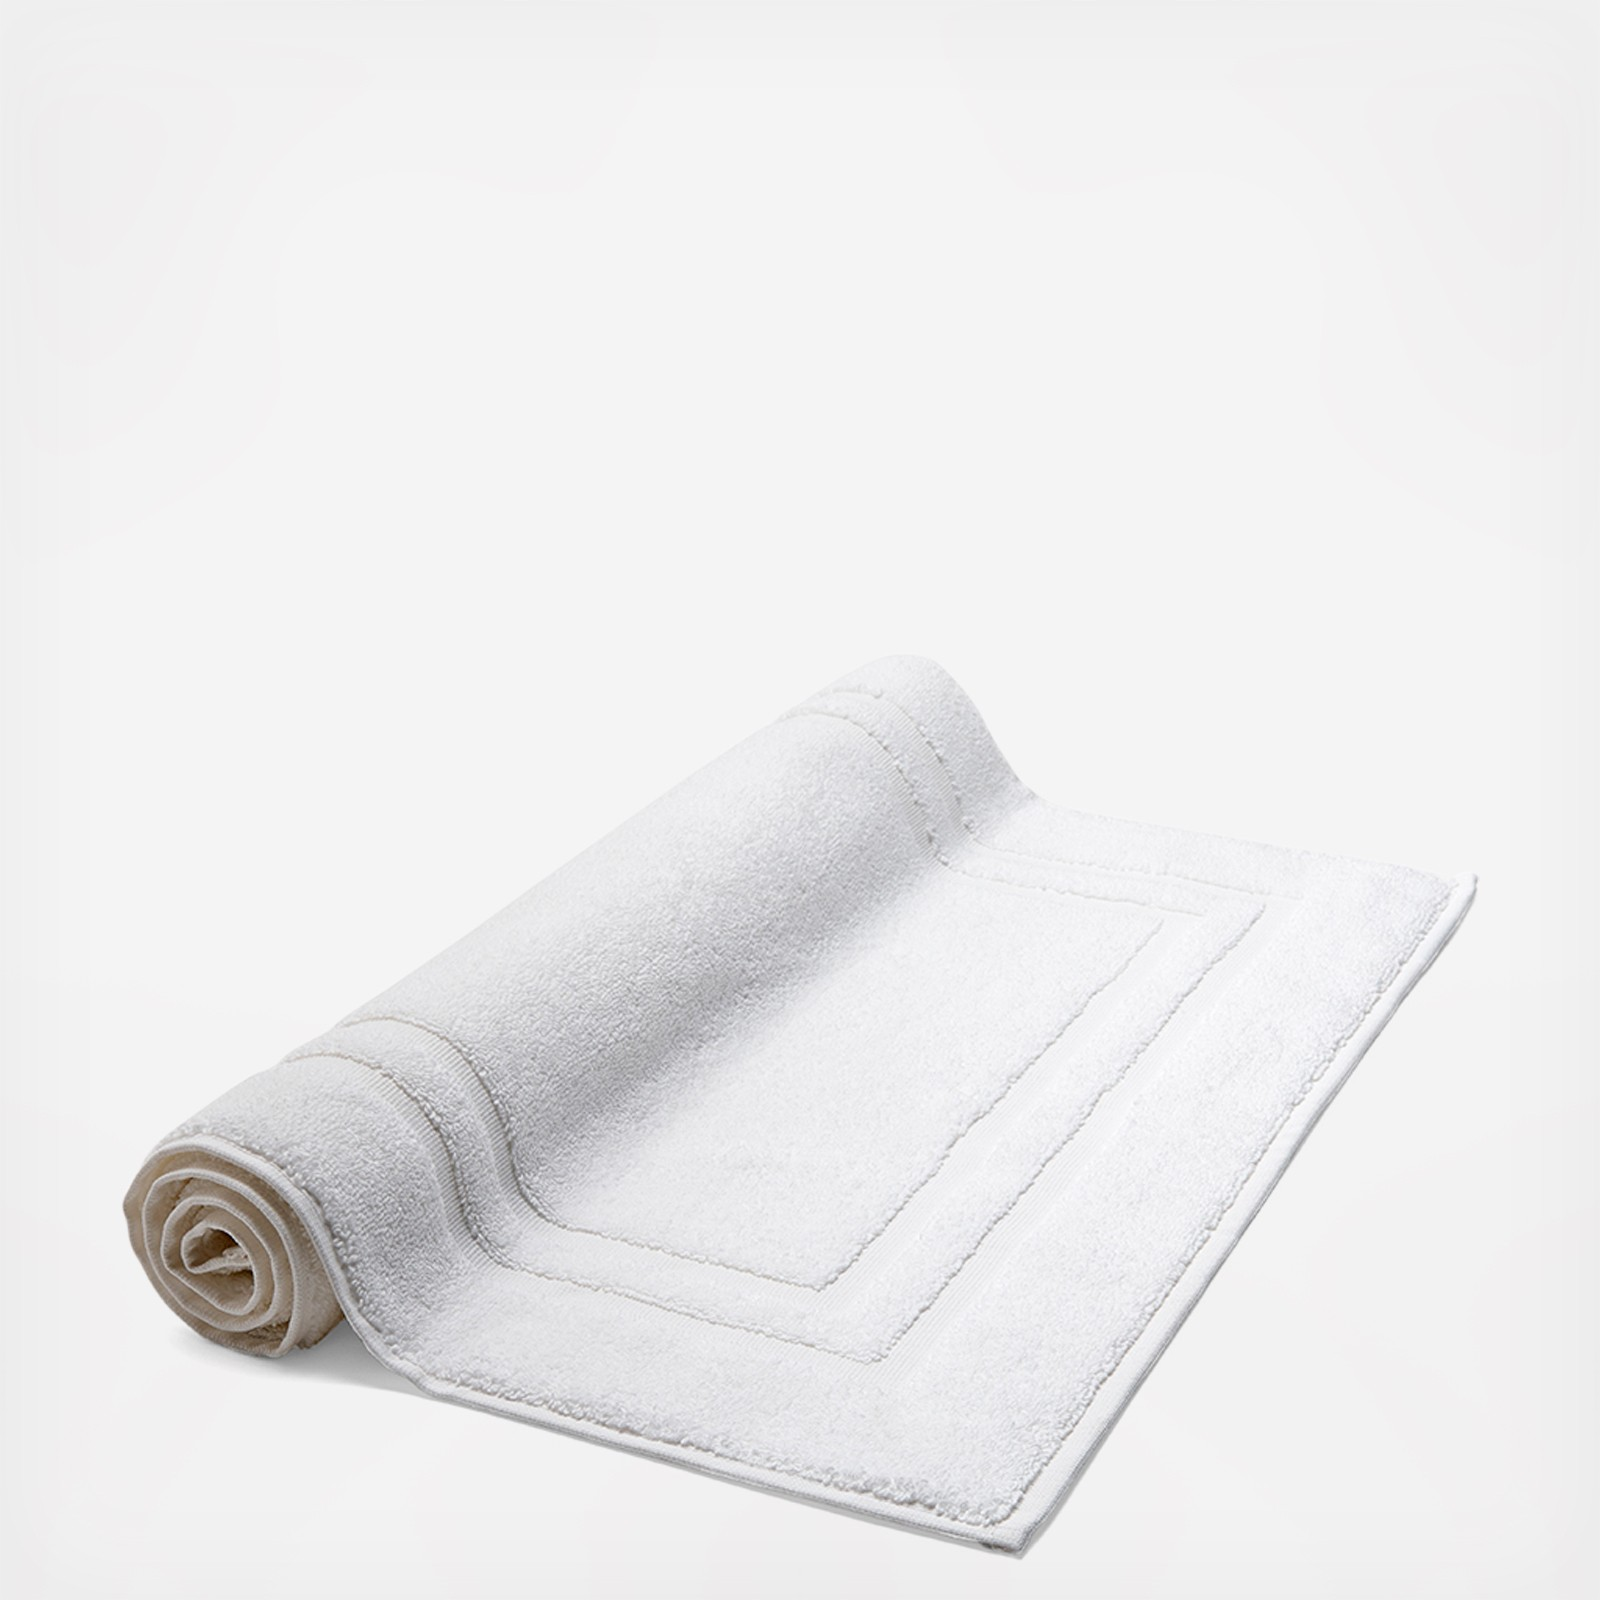 amazing Waterworks Bath Mats Part - 14: Perennial Turkish Bath Mat | Zola